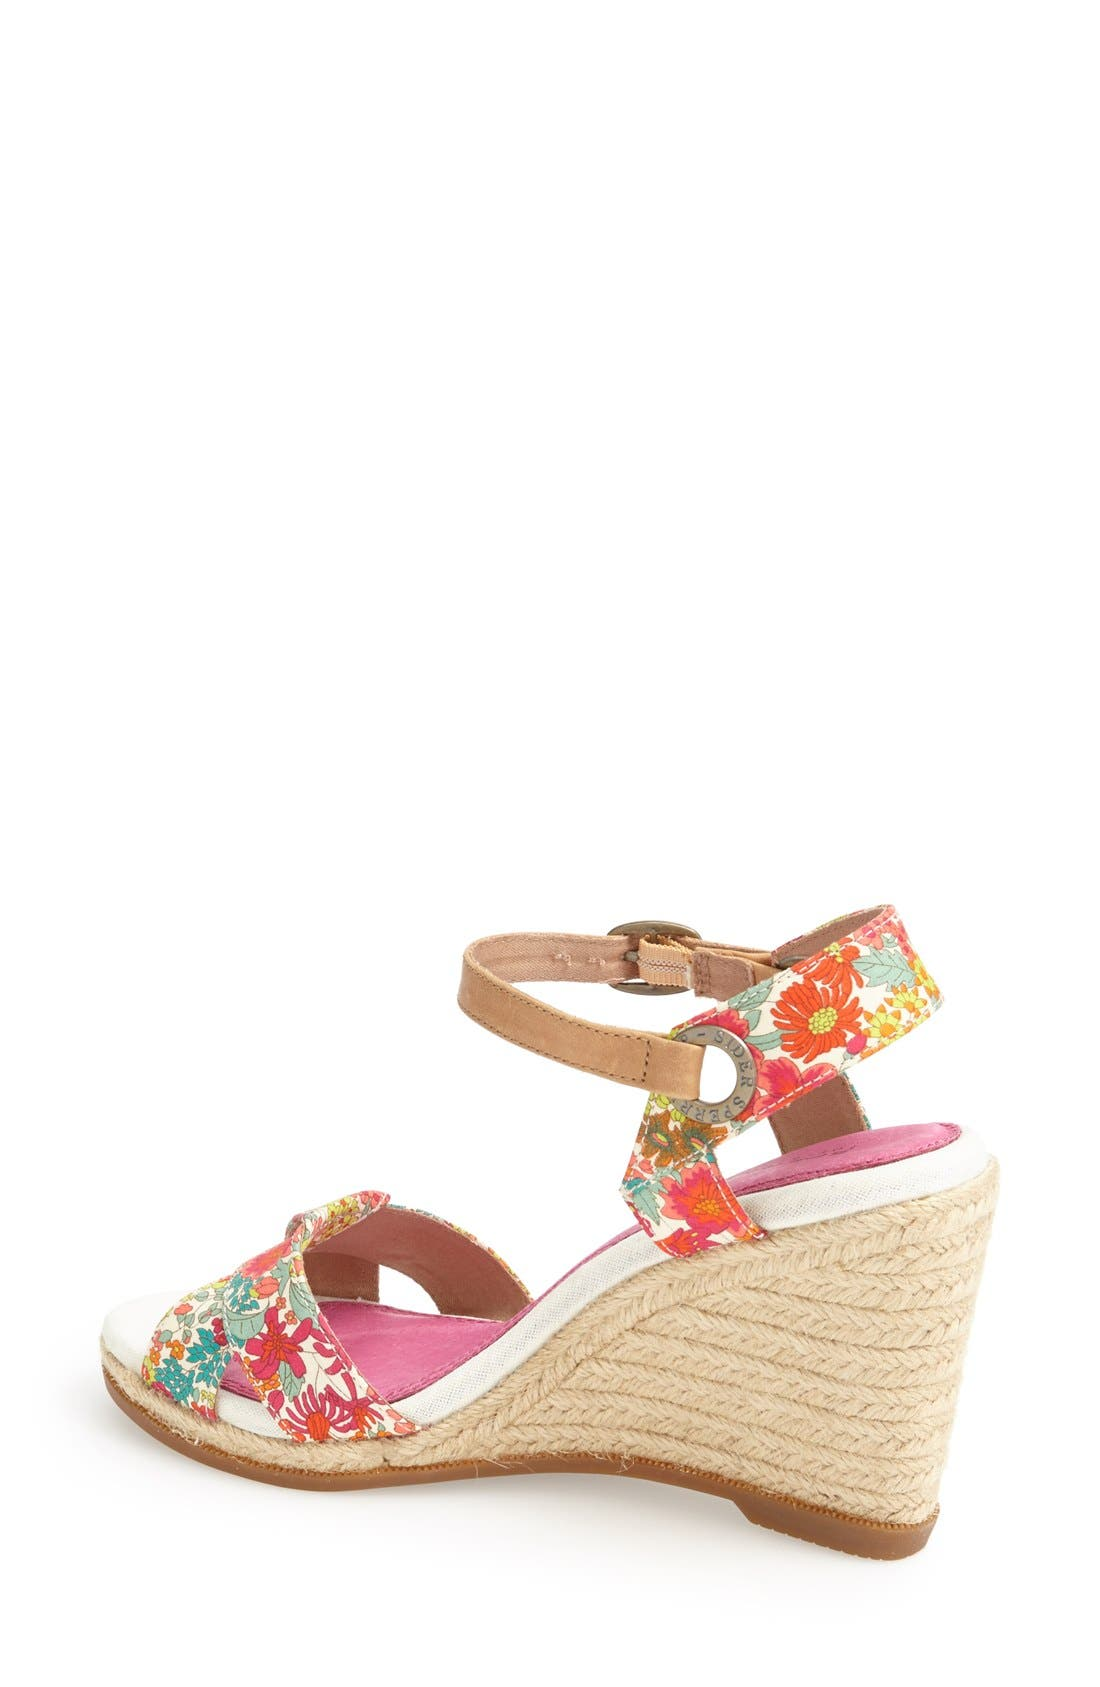 Alternate Image 2  - Sperry 'Saylor' Espadrille Wedge Sandal (Women)